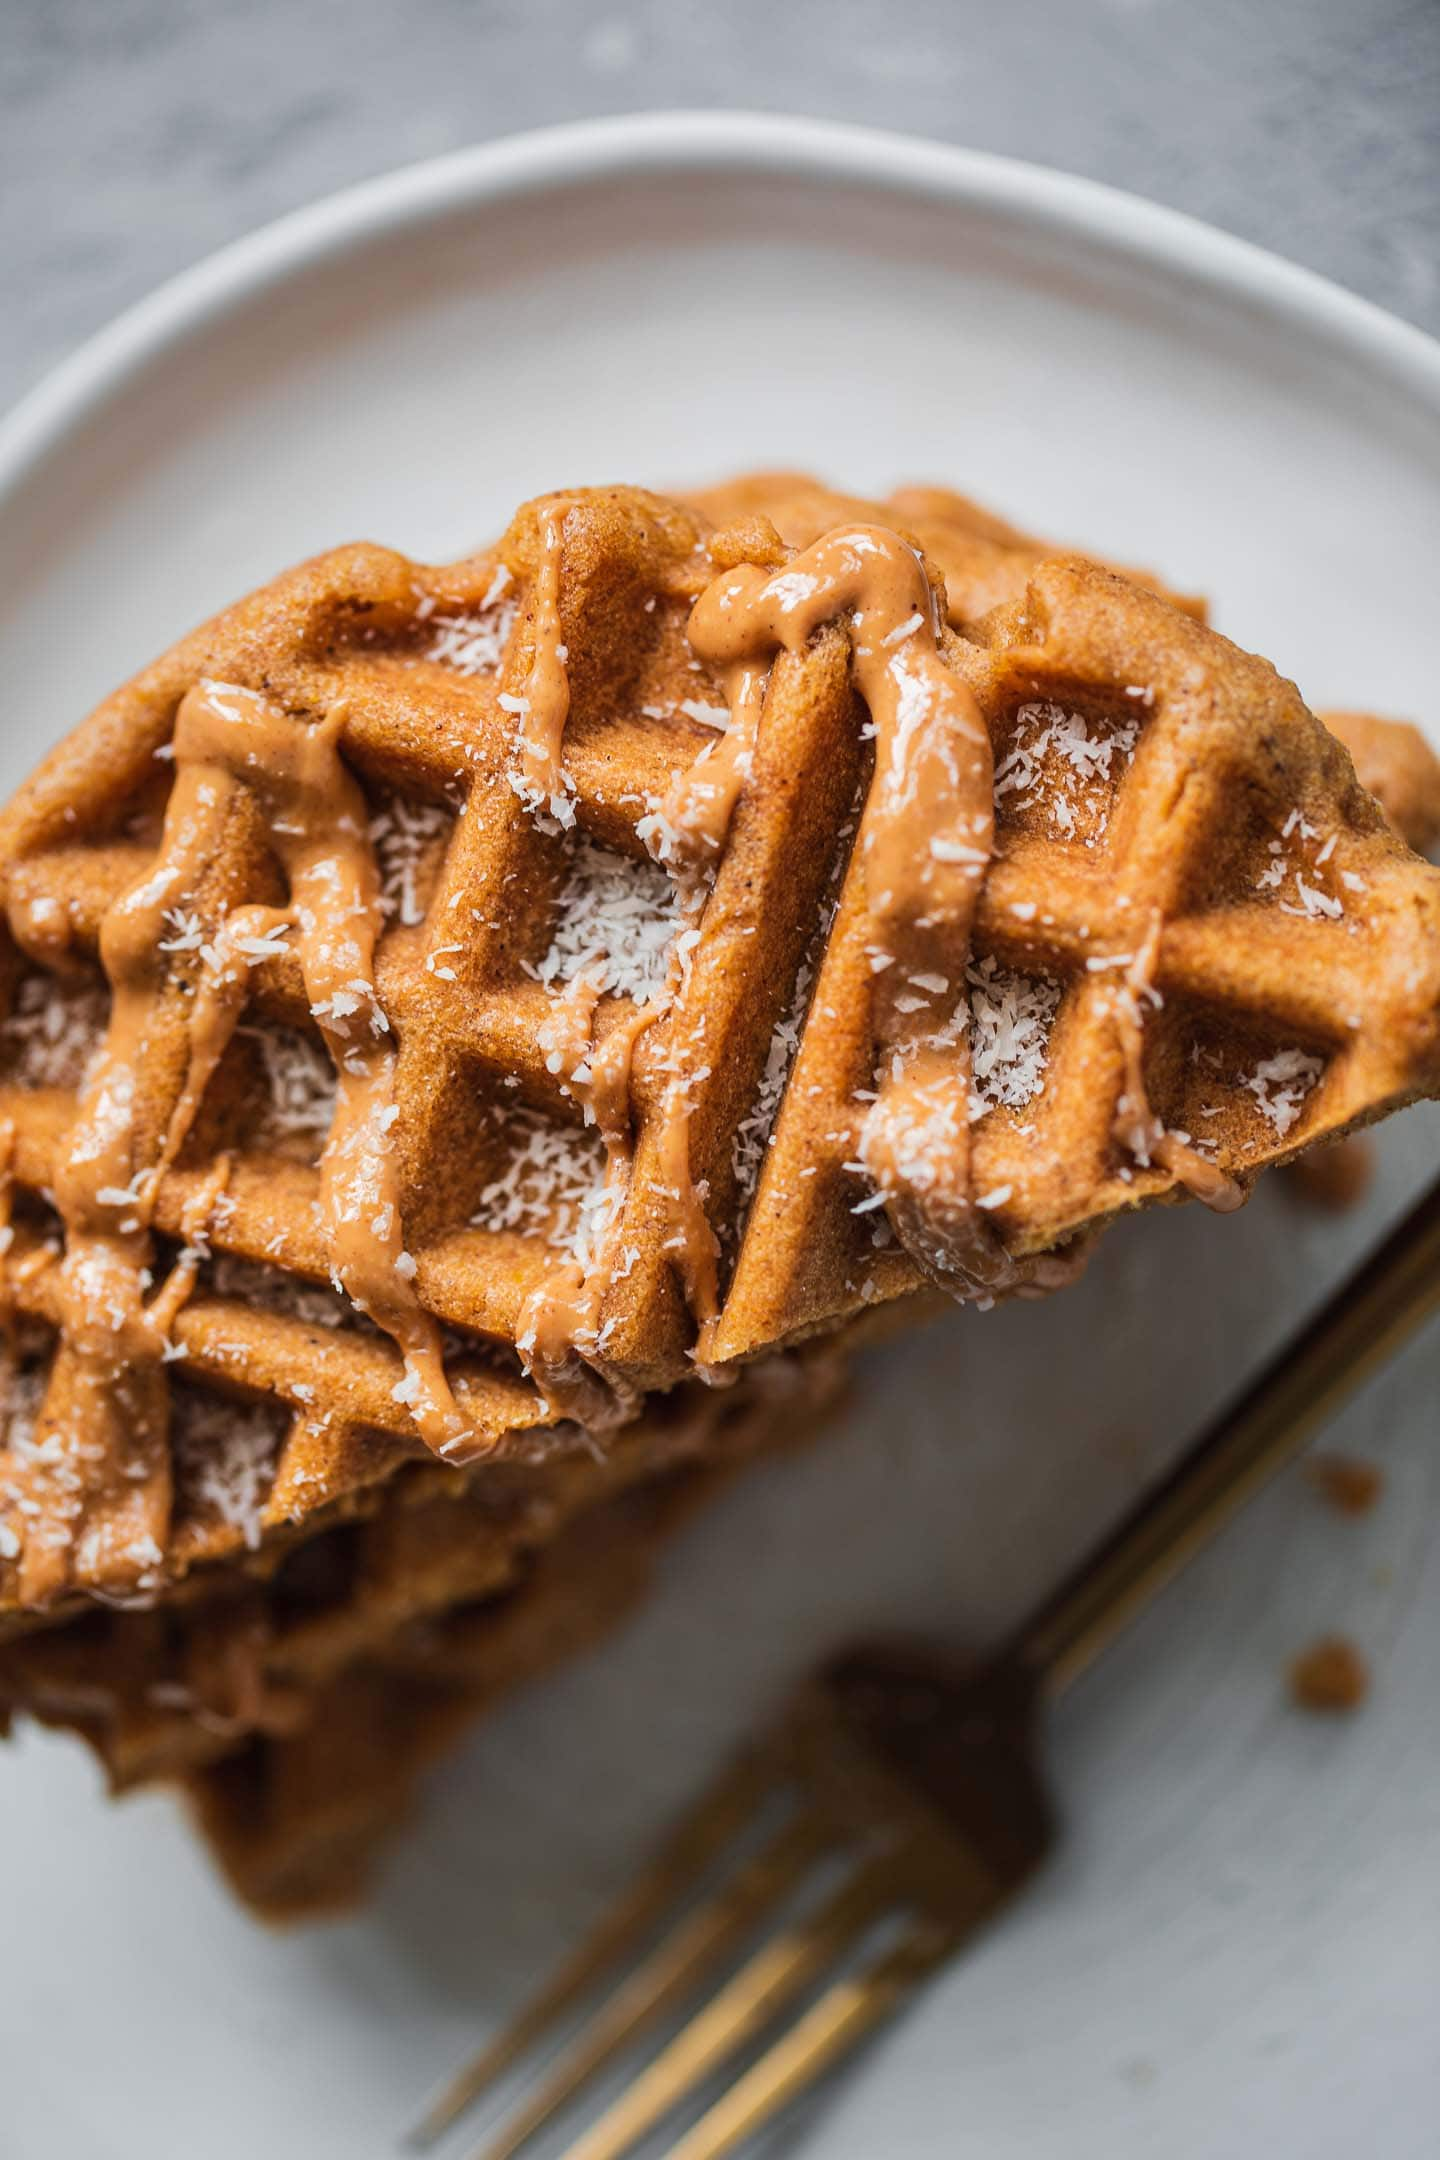 Stack of vegan gluten-free waffles on a plate